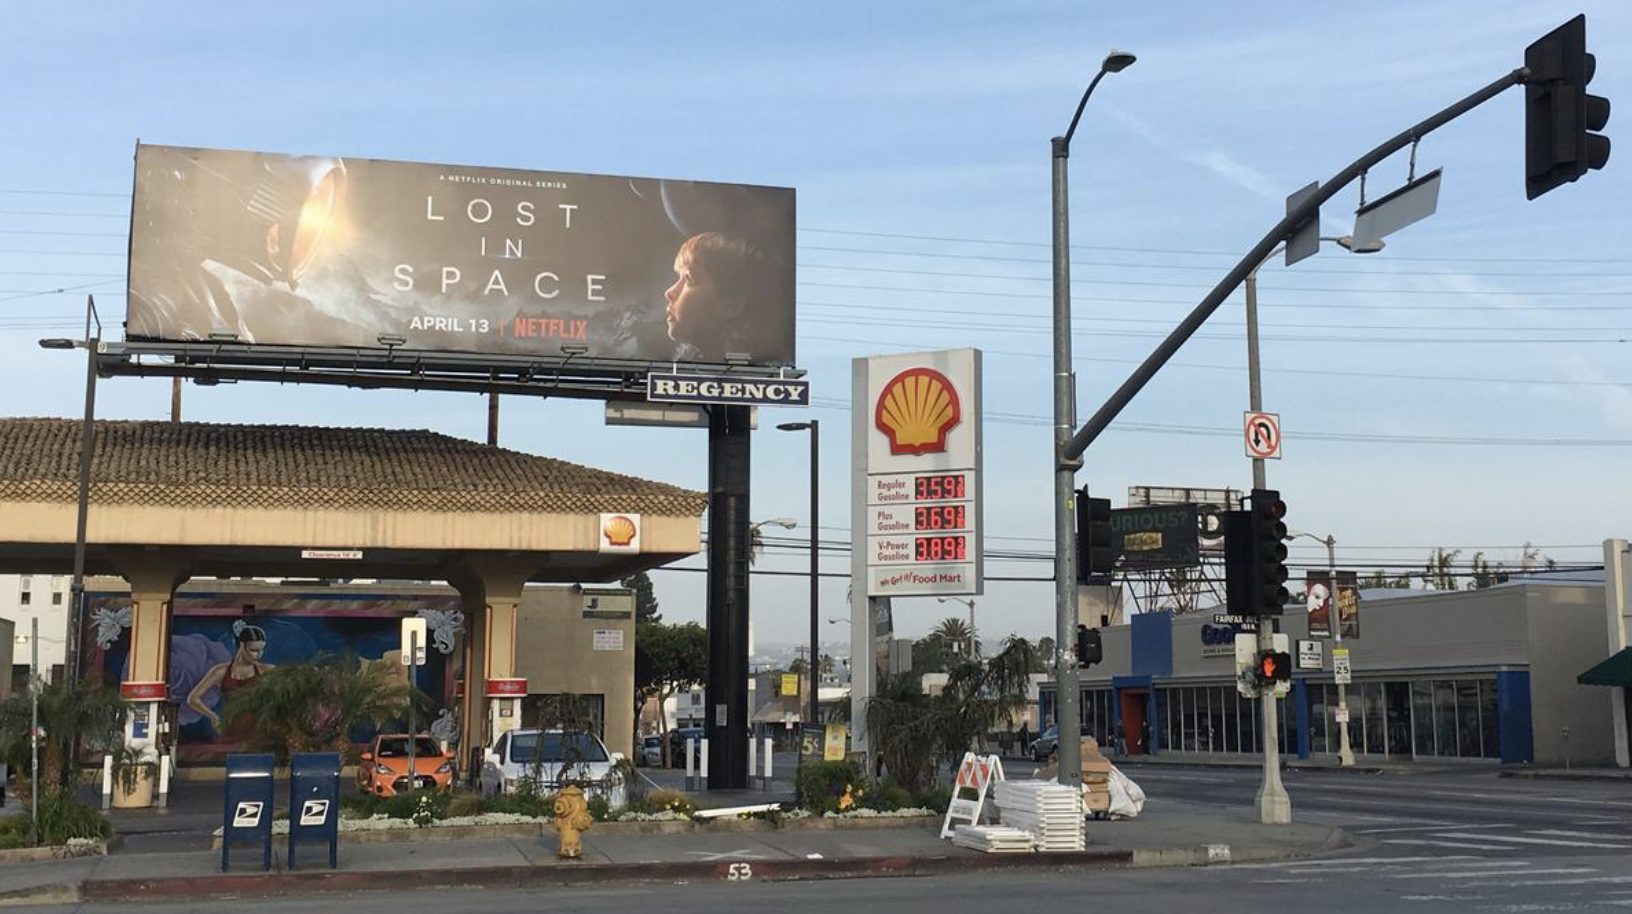 billboard advertising owned by Netflix